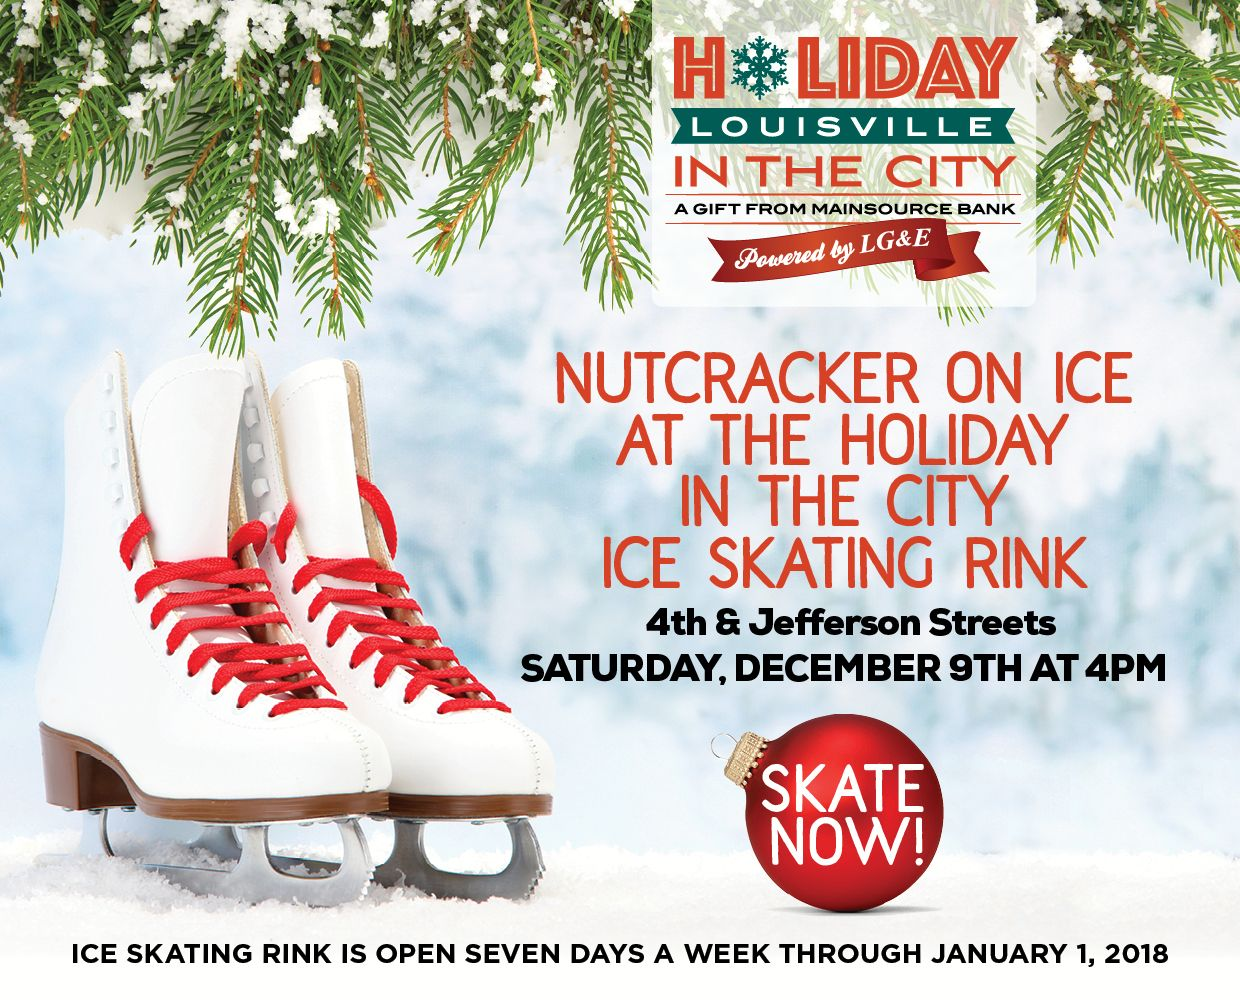 December 9th - Nutcracker on Ice at Holiday in the City image